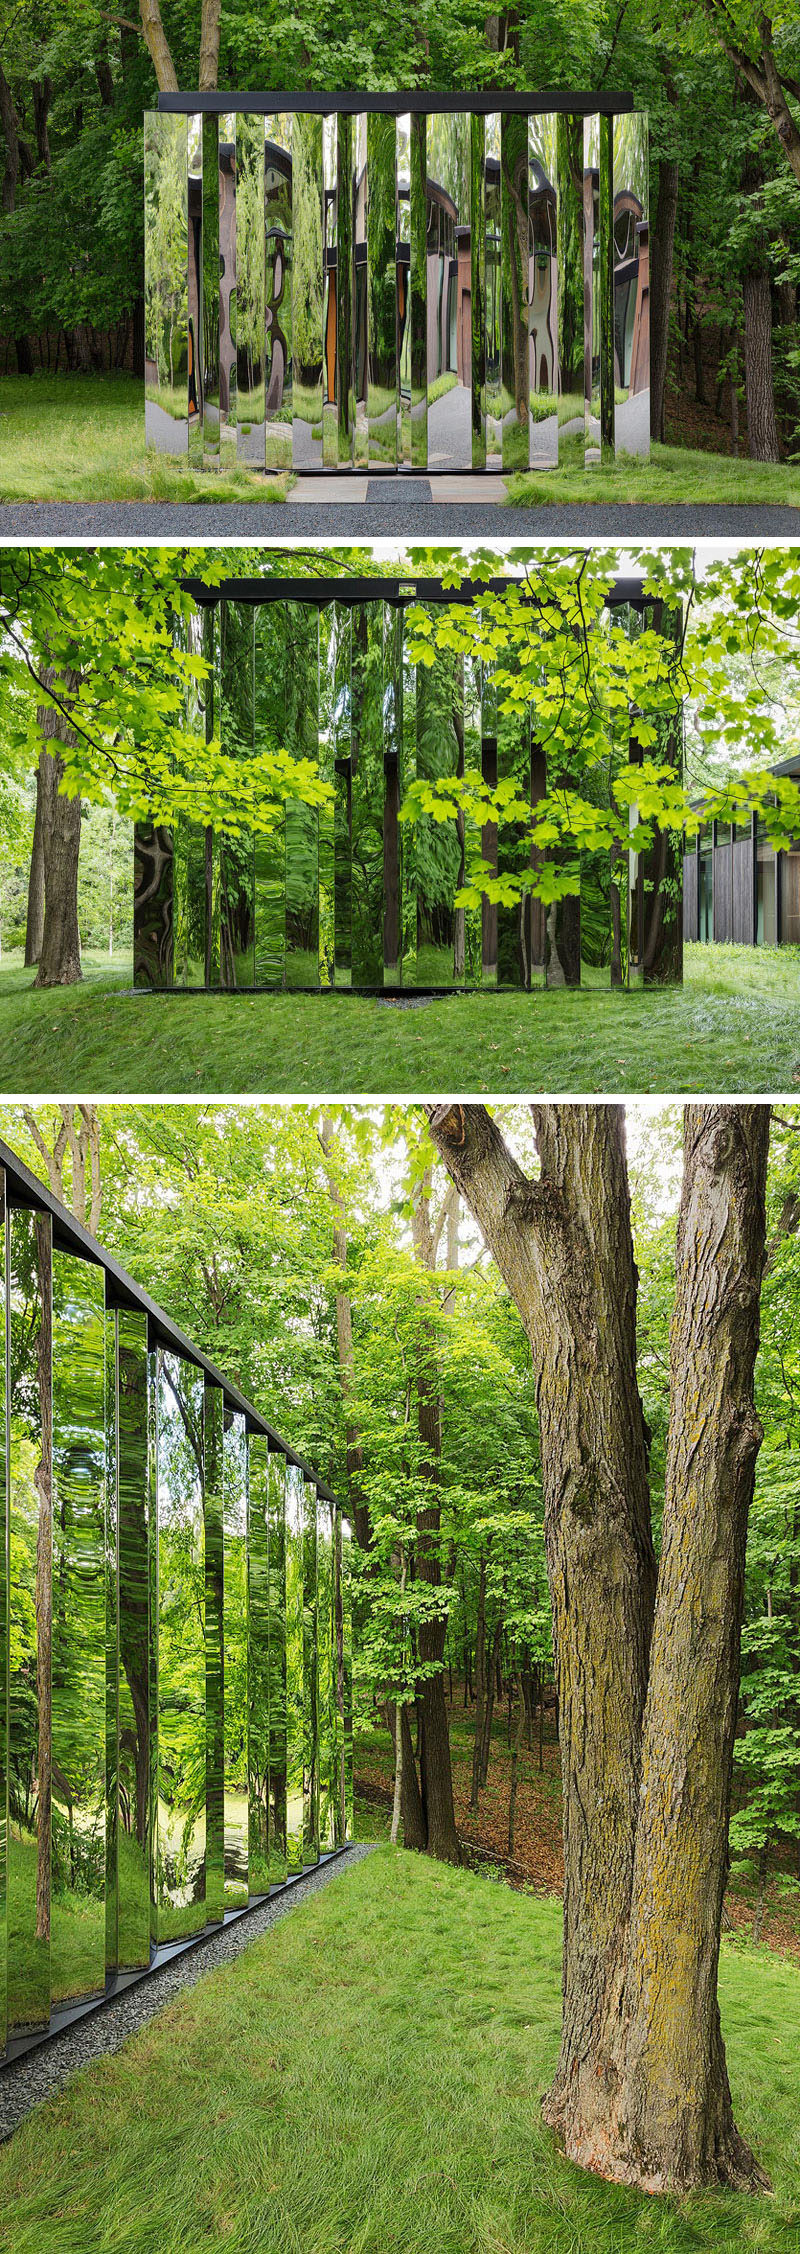 "This modern detached out-building, or ""shiny shed"", has been designed for storage and it almost dissolves into the woods by showing reflections of its surroundings. #Shed #Mirrored #Architecture"